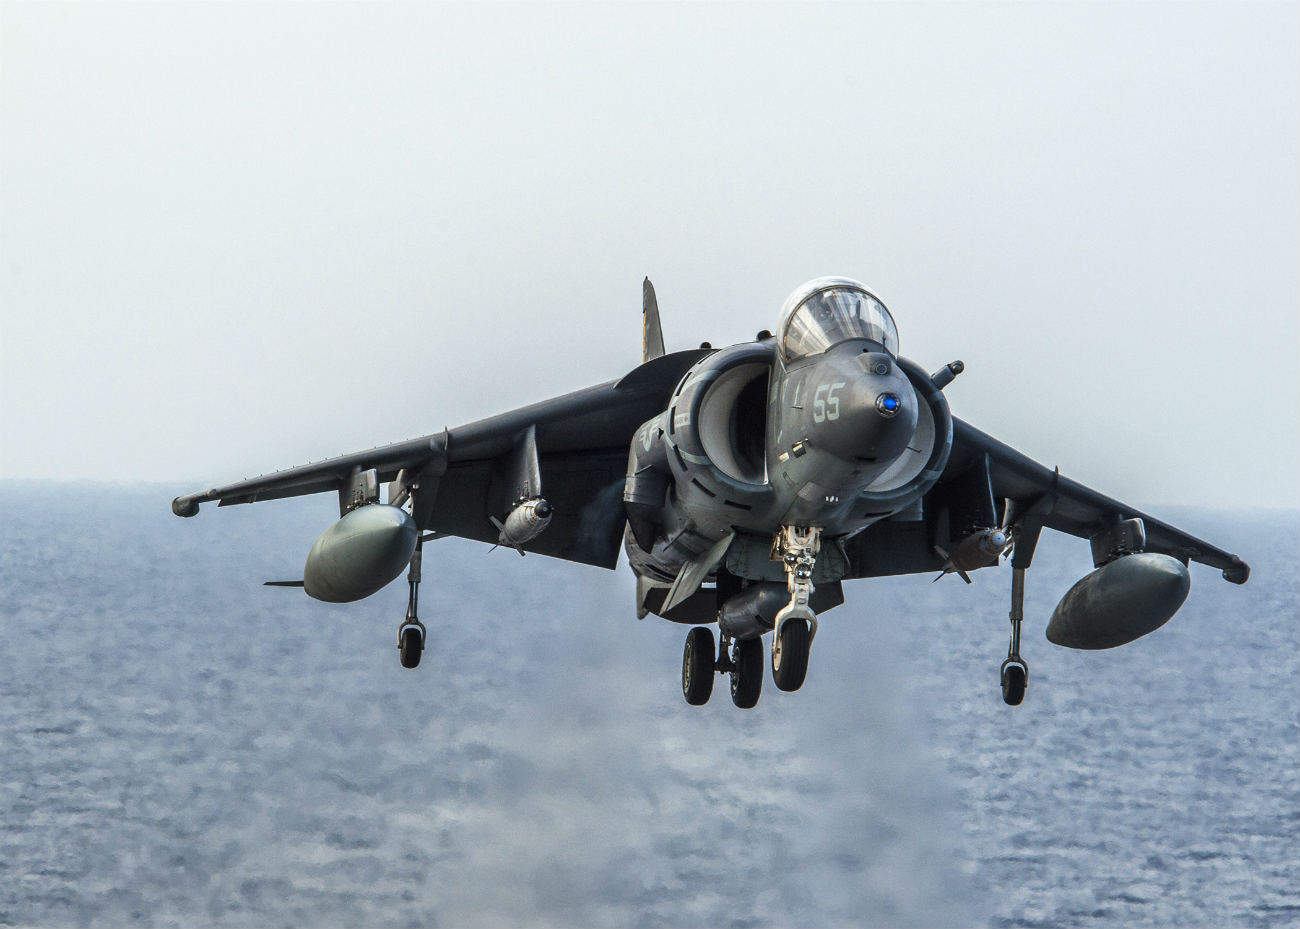 AV 8B Harrier vertical landing